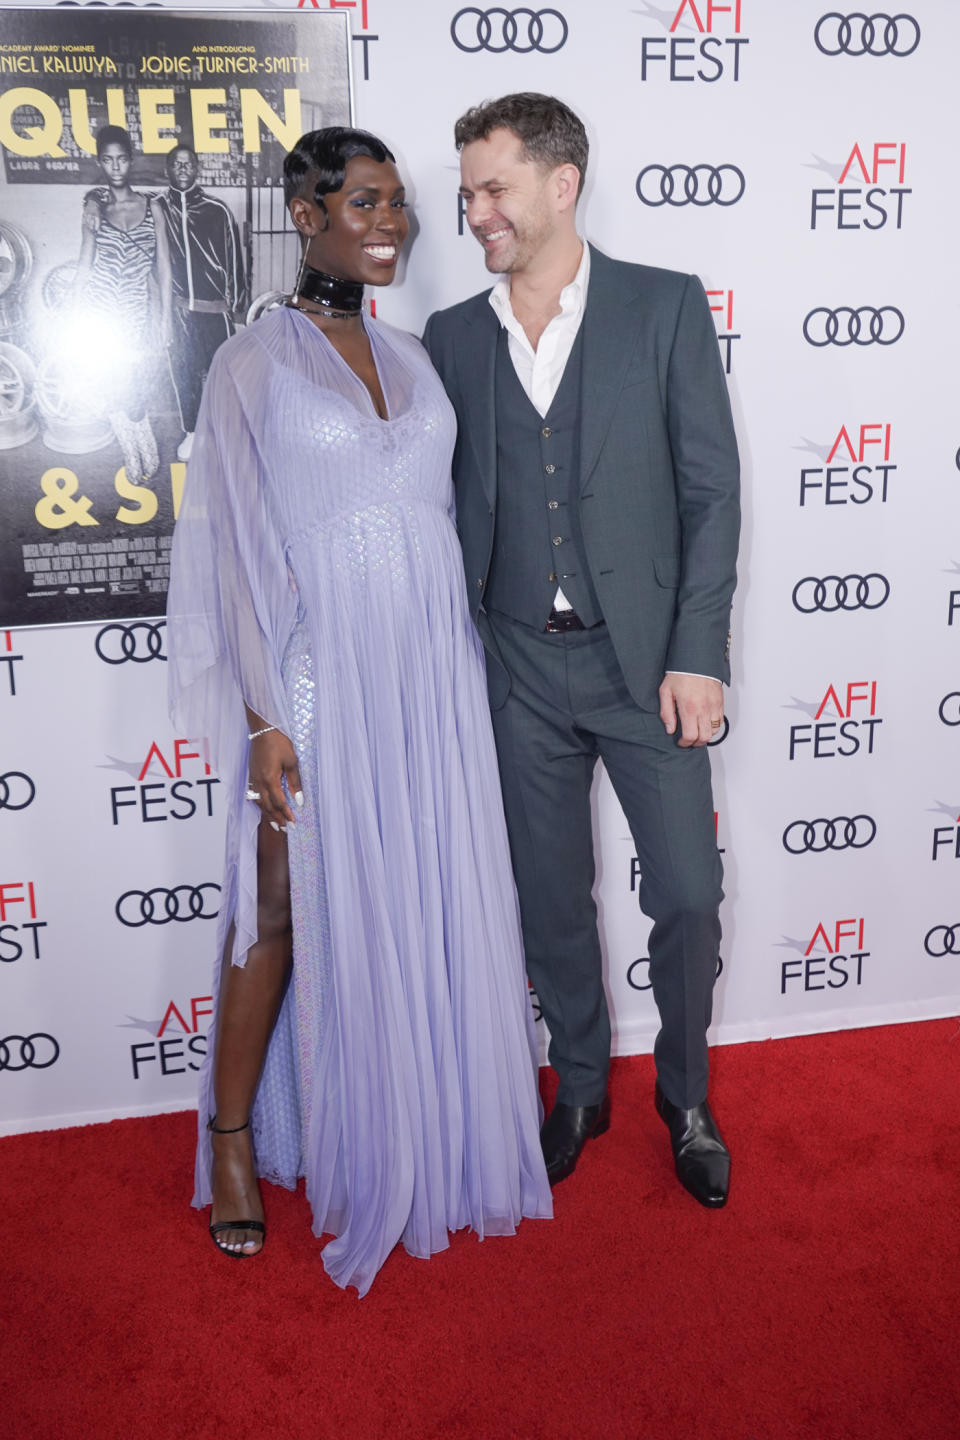 Jodie Turner-Smith and Joshua Jackson walks the red carpet for AFI's